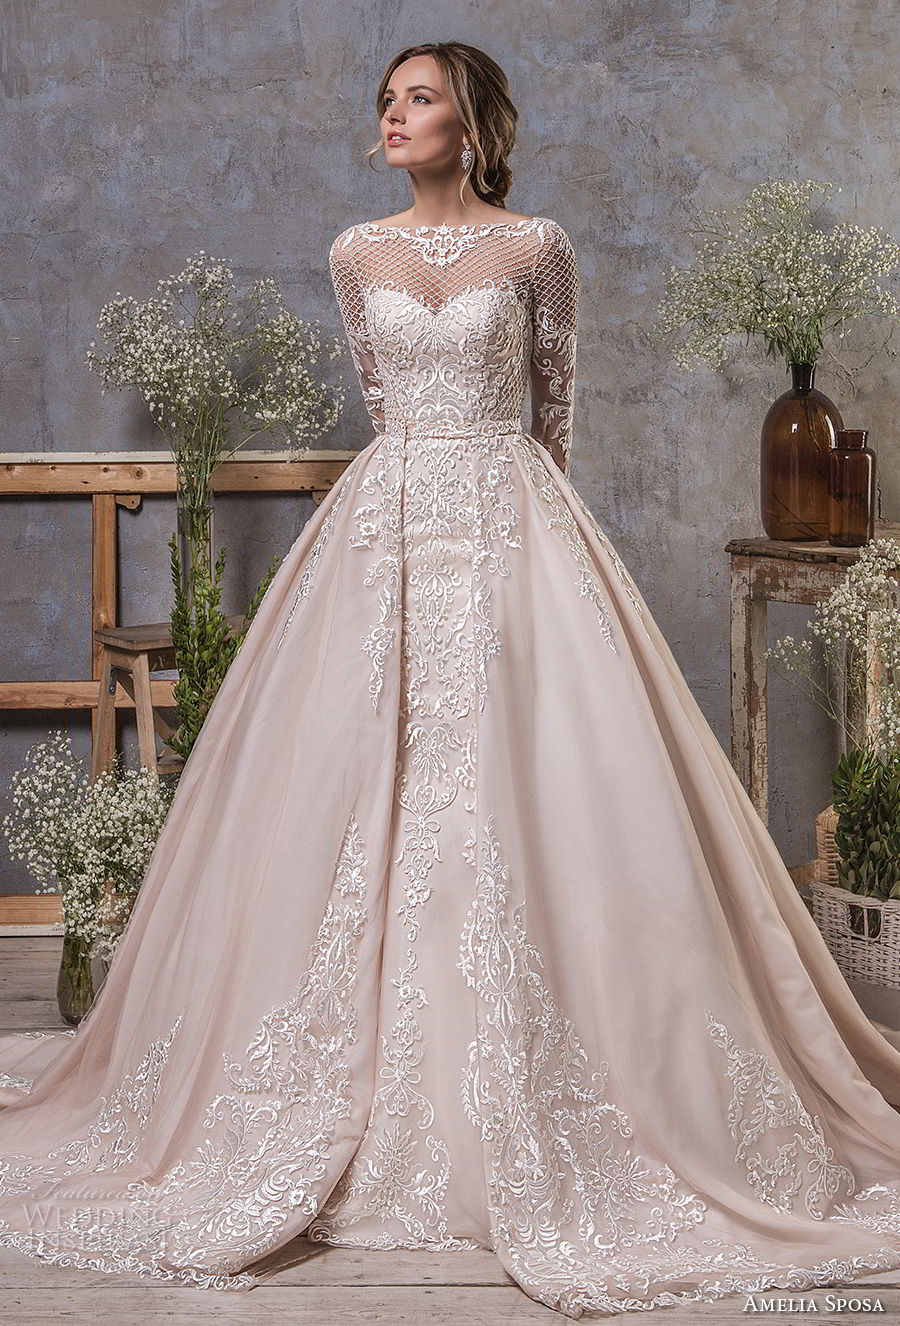 amelia sposa fall 2018 bridal long sleeves illusion bateau sweetheart neckline full embellishment elegant mermaid wedding dress a line overskirt sheer lace back sweep train (19) mv